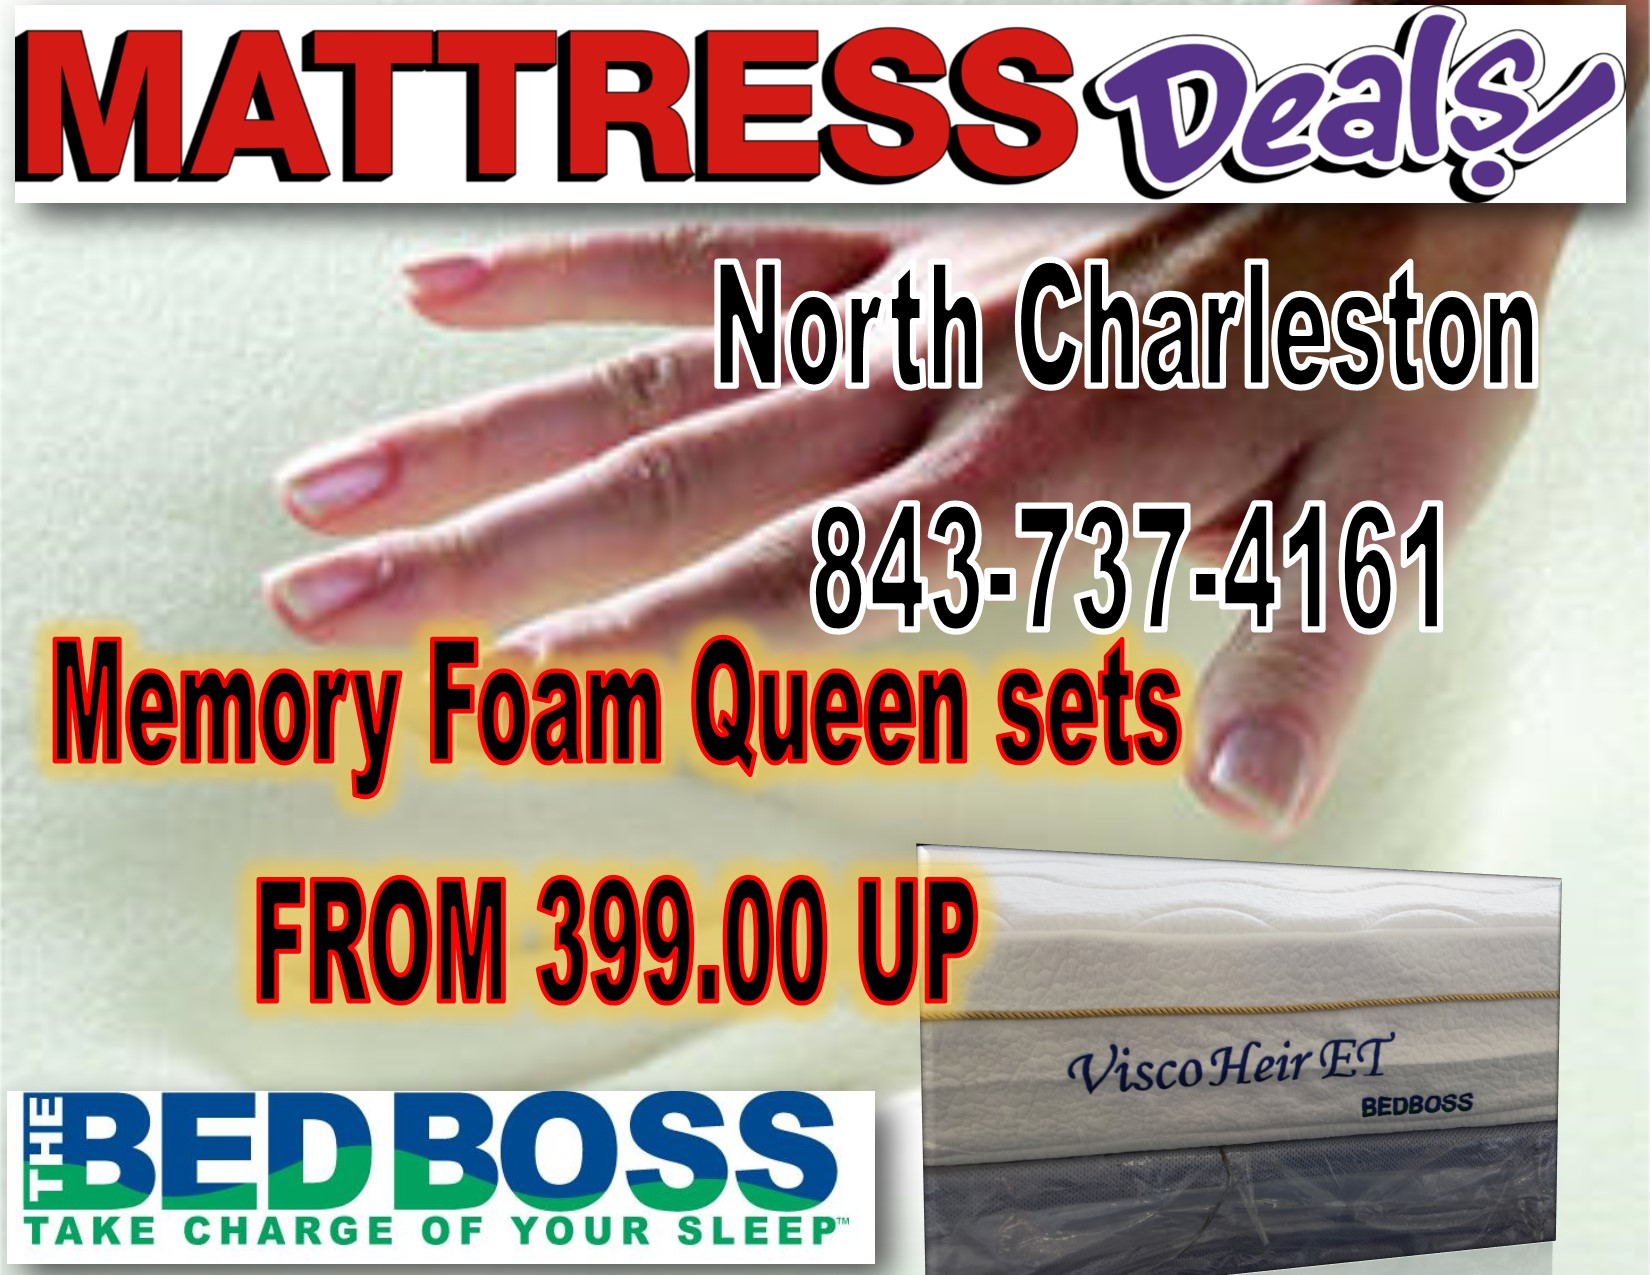 Mattress Deals image 32